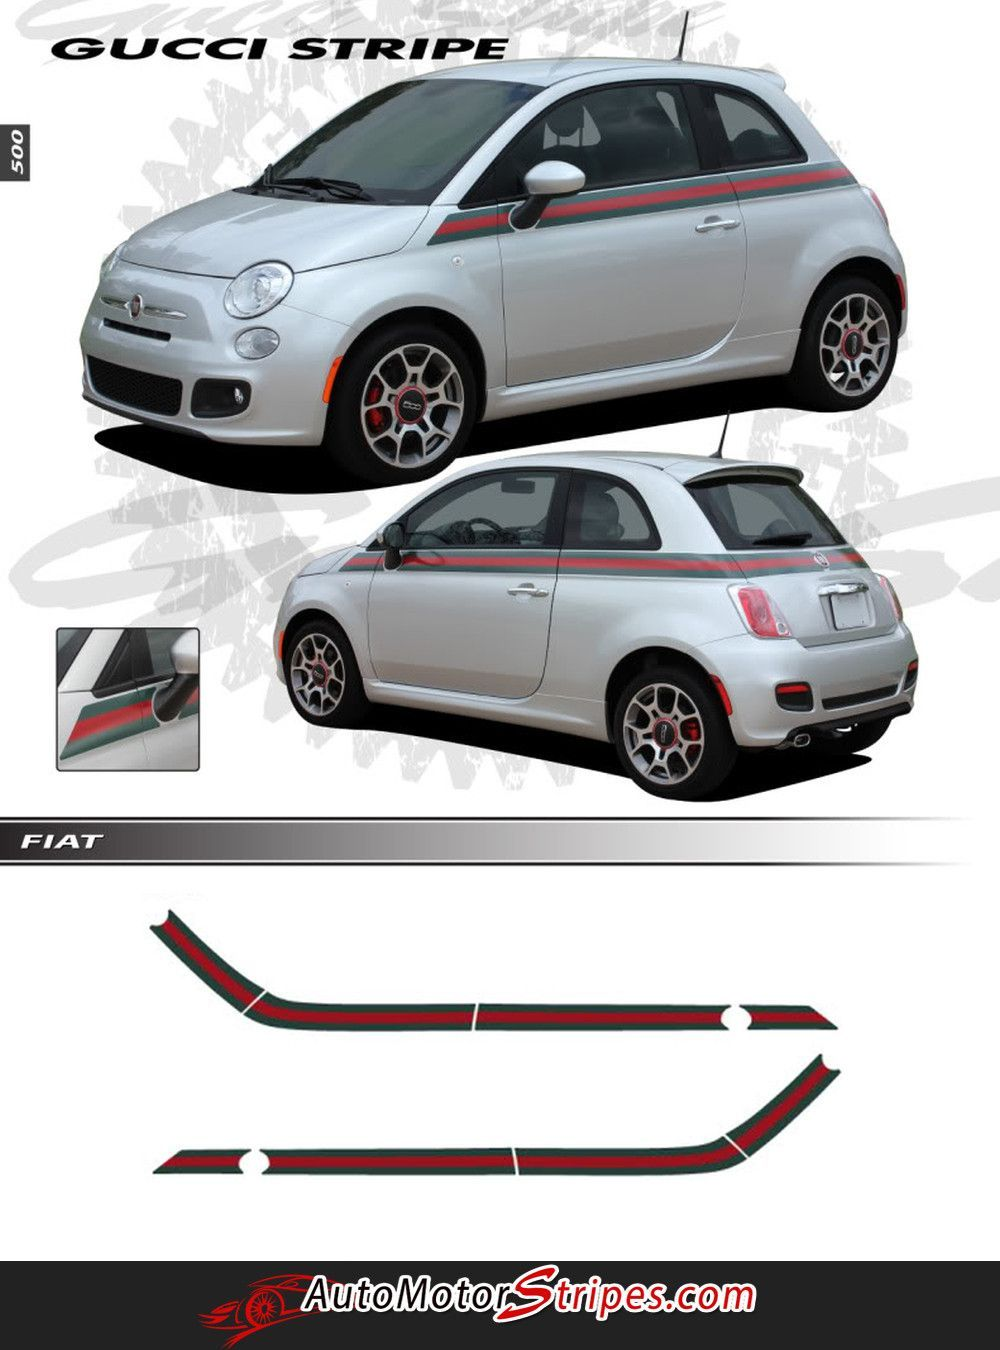 902693e75bb3d Vehicle Specific Style - Fiat 500 Italian Gucci Red Green Flag Upper Door  Accent Vinyl Graphic